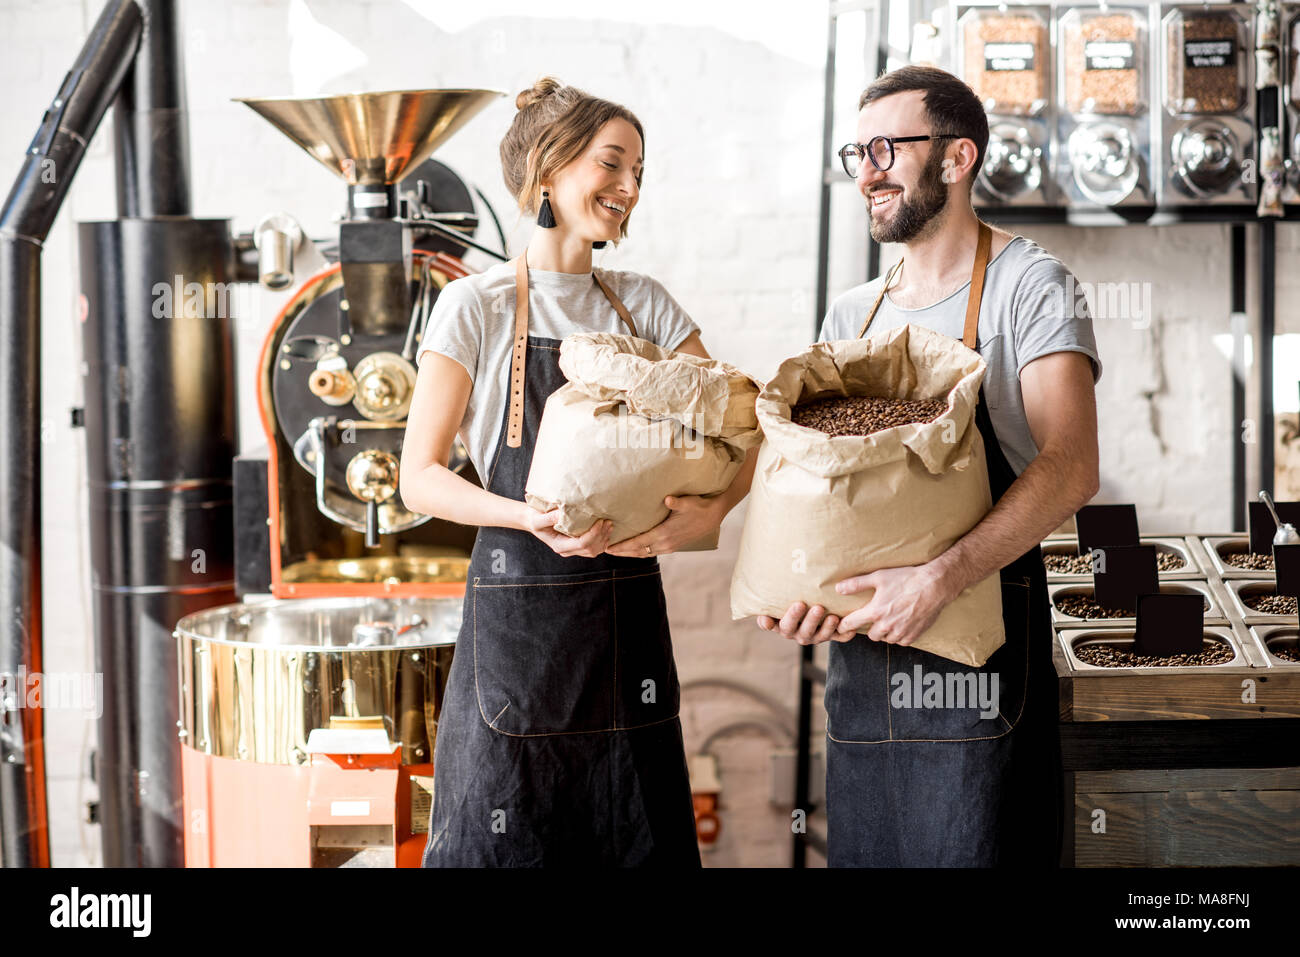 Portrait of a two happy baristas in uniform standing with bags full of coffee beans at the coffee store - Stock Image